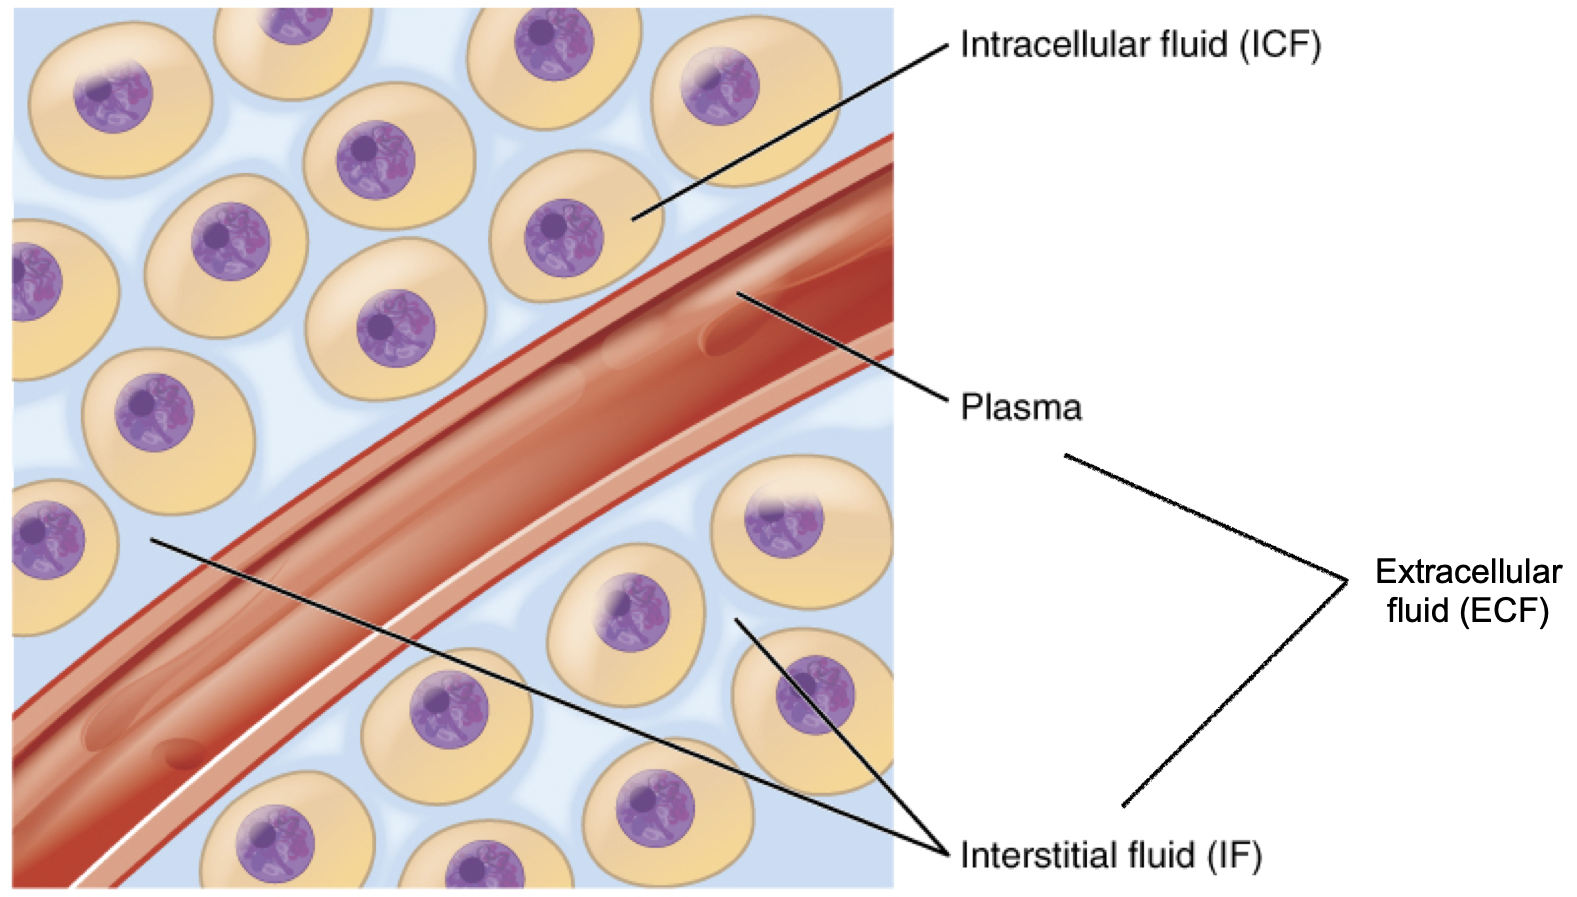 This diagram shows a small blood vessel surrounded by several body cells. The fluid between the body cells is the interstitial fluid (IF), which is a type of extracellular fluid (ECF). The fluid in the blood vessel is also an example of extracellular fluid. The fluid in the cytoplasm of each body cell is intracellular fluid, or ICF.